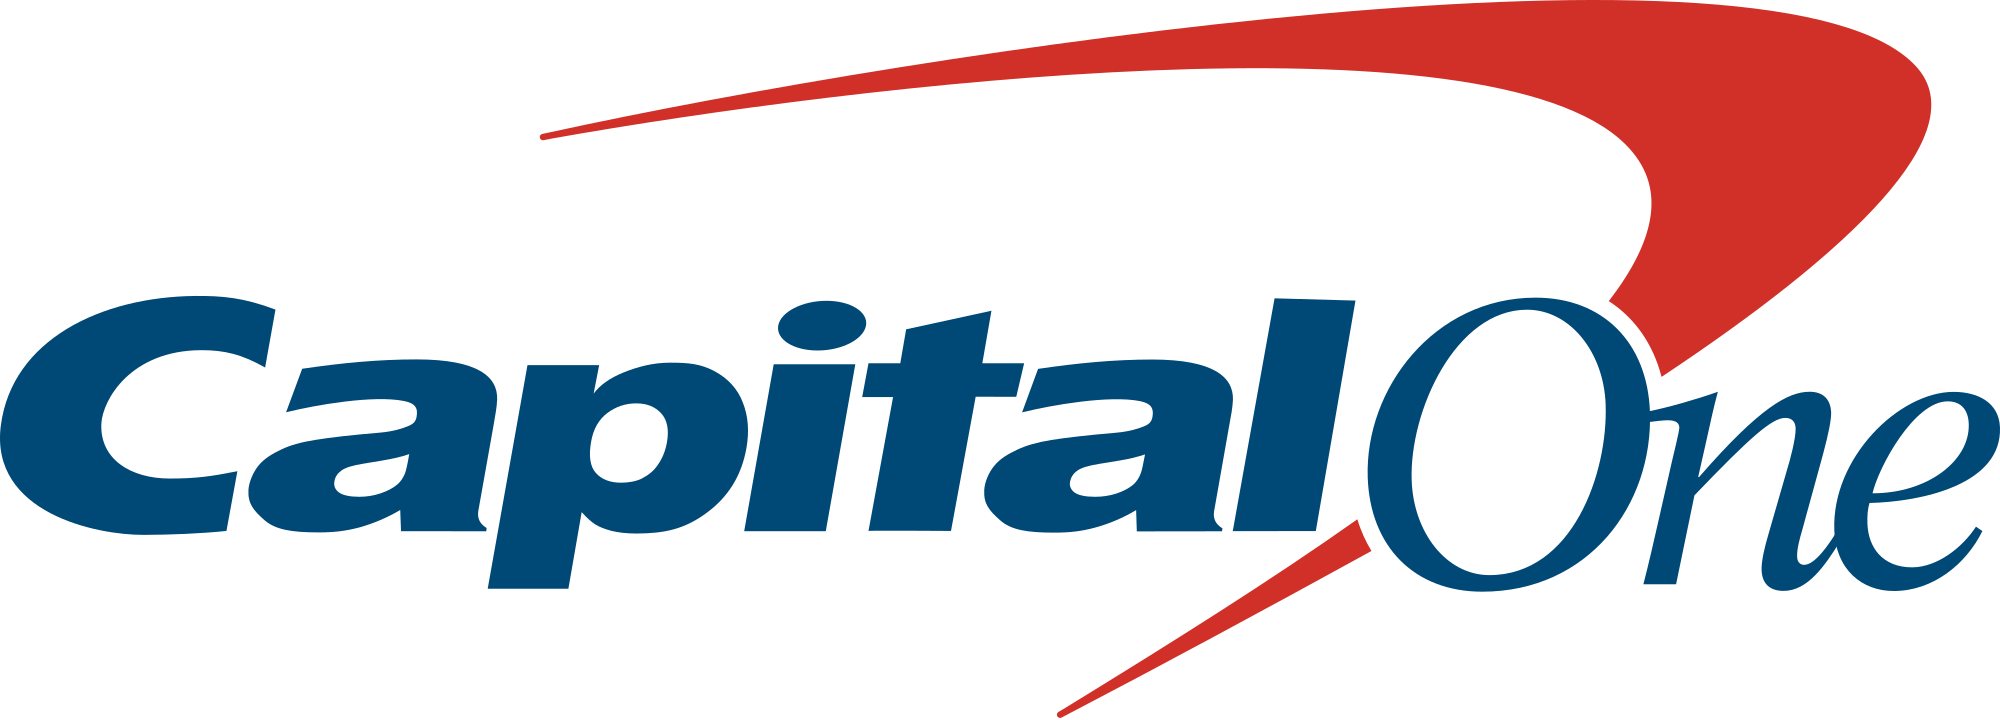 Senior Manager, Software Engineering role from Capital One in Richmond, VA